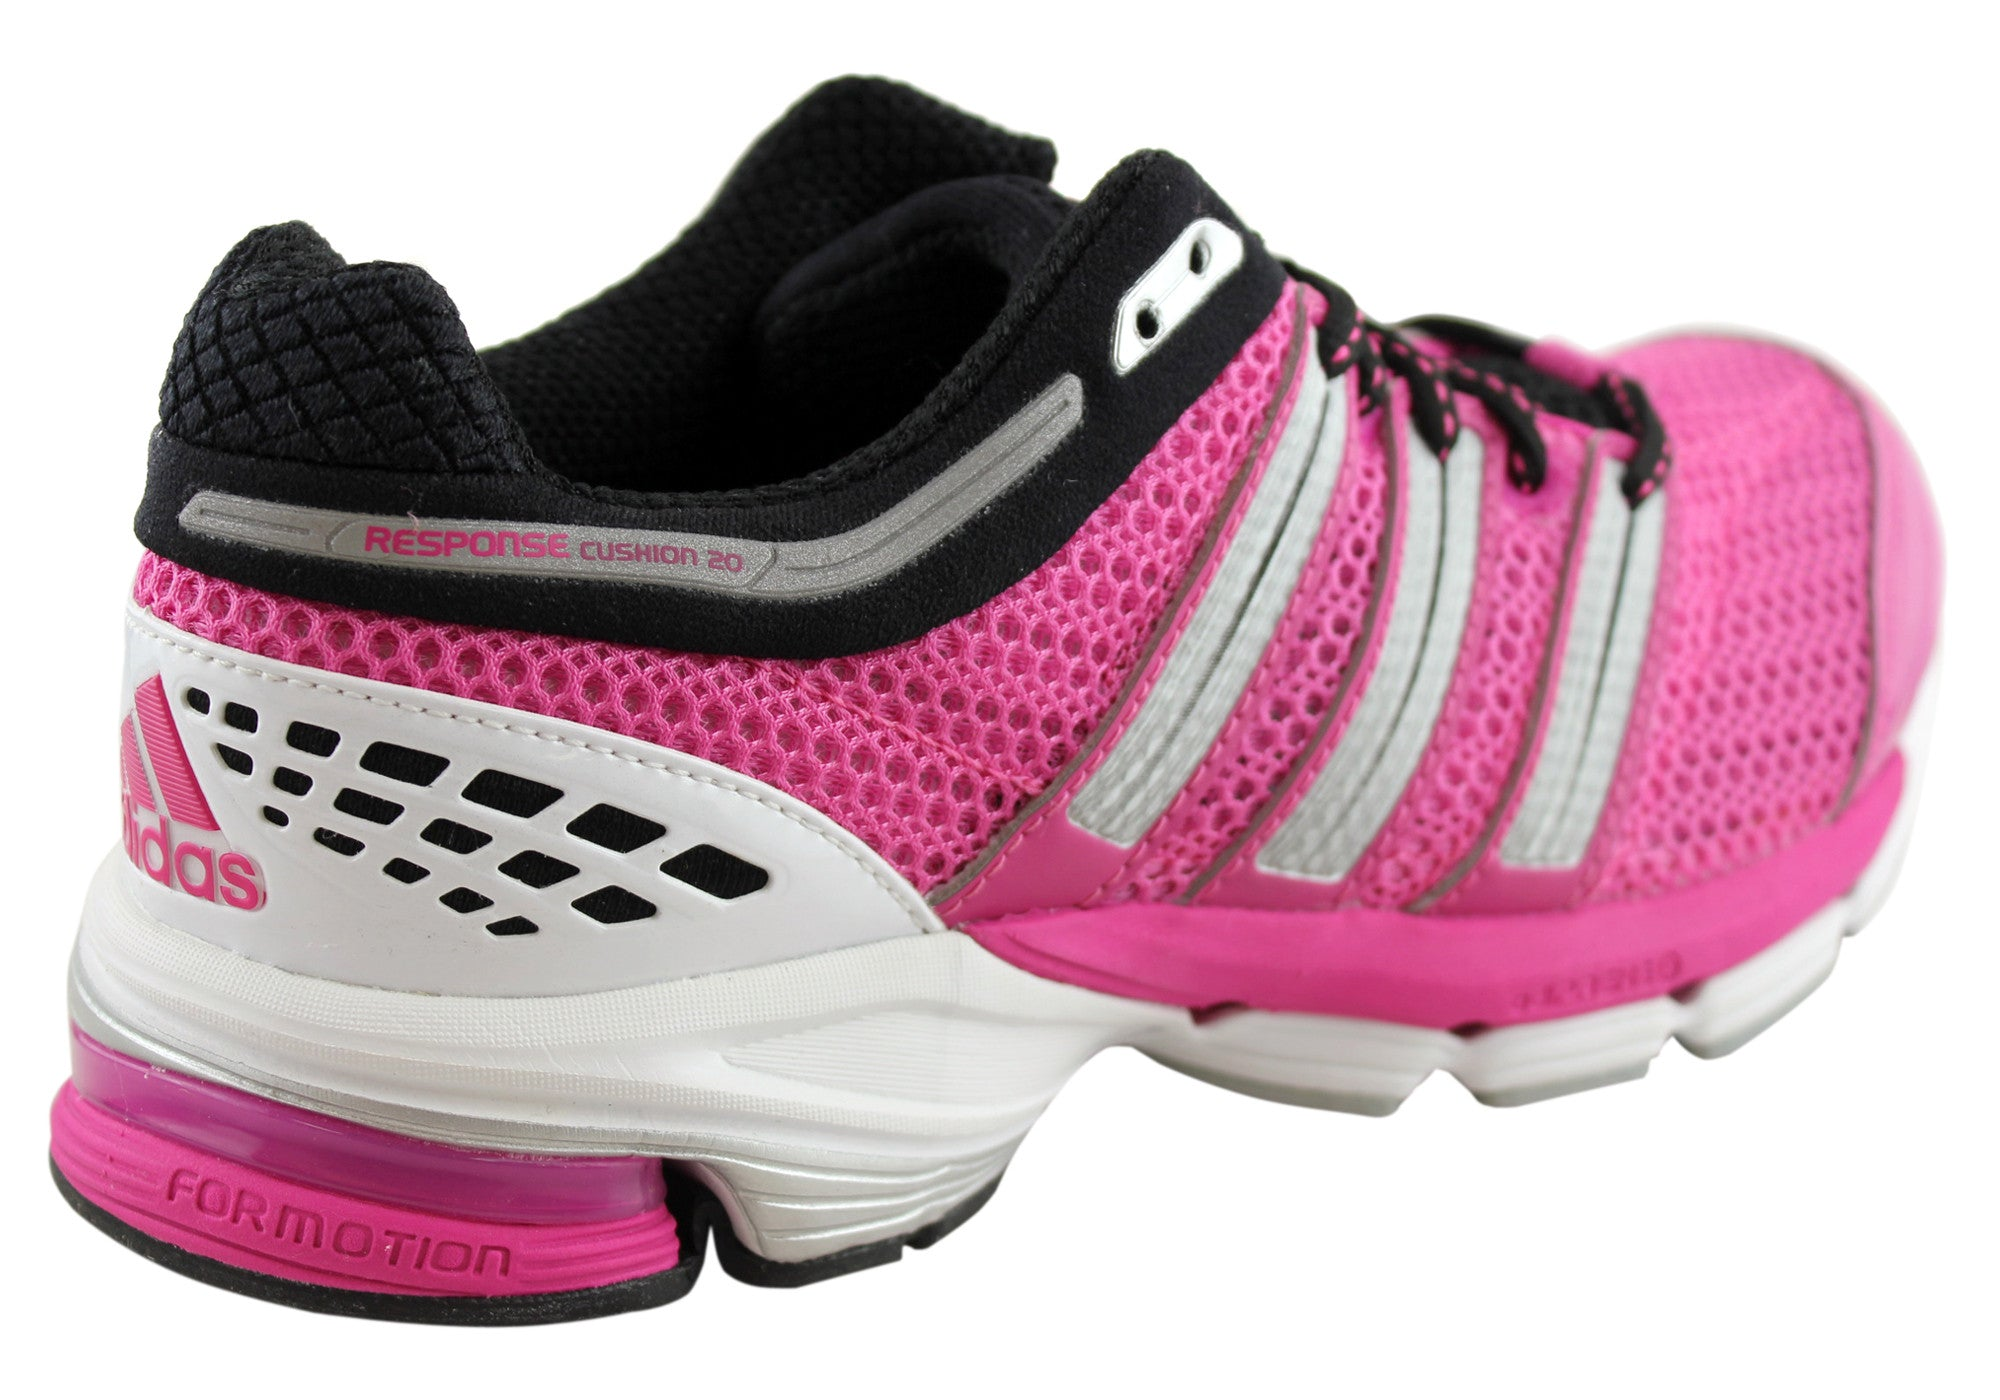 Adidas Resp Cushion 20W Womens Premium Running Shoes